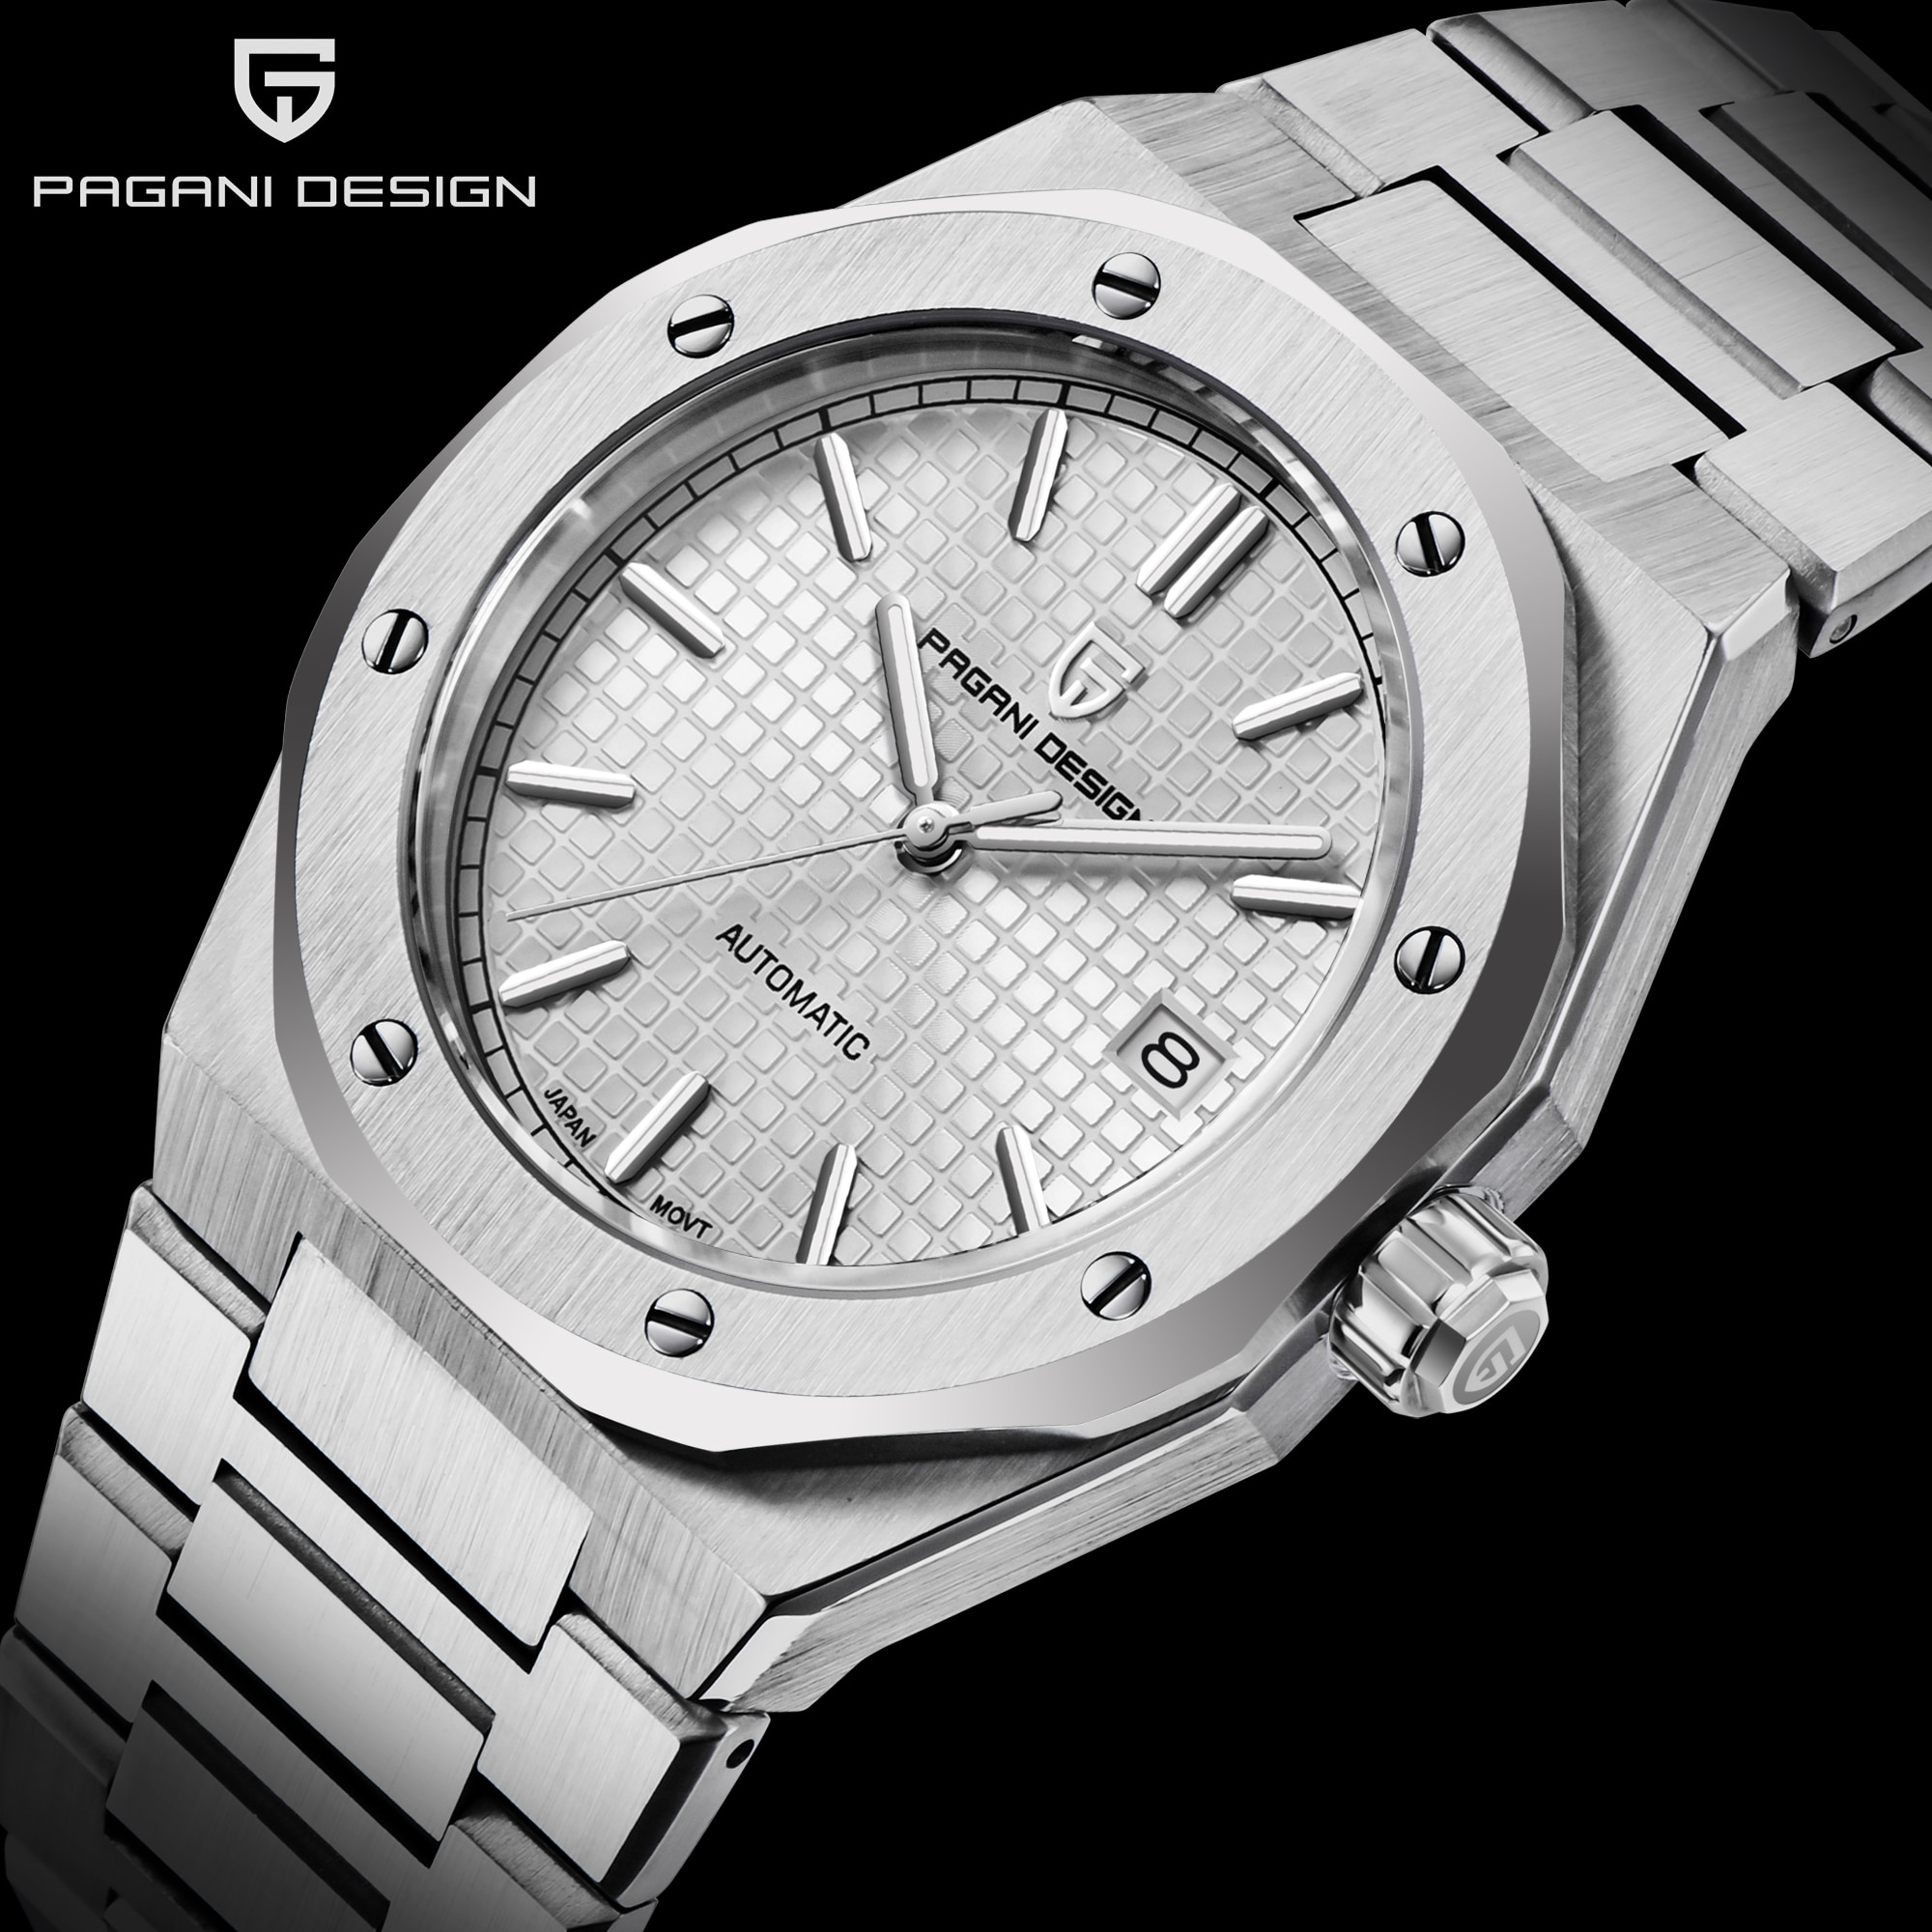 PAGANI Design 2021 New Automatic Mechanical Men's Watches Stainless Steel SAPPHIRE CRYSTAL 100M Waterproof Watches NH35A Relogio